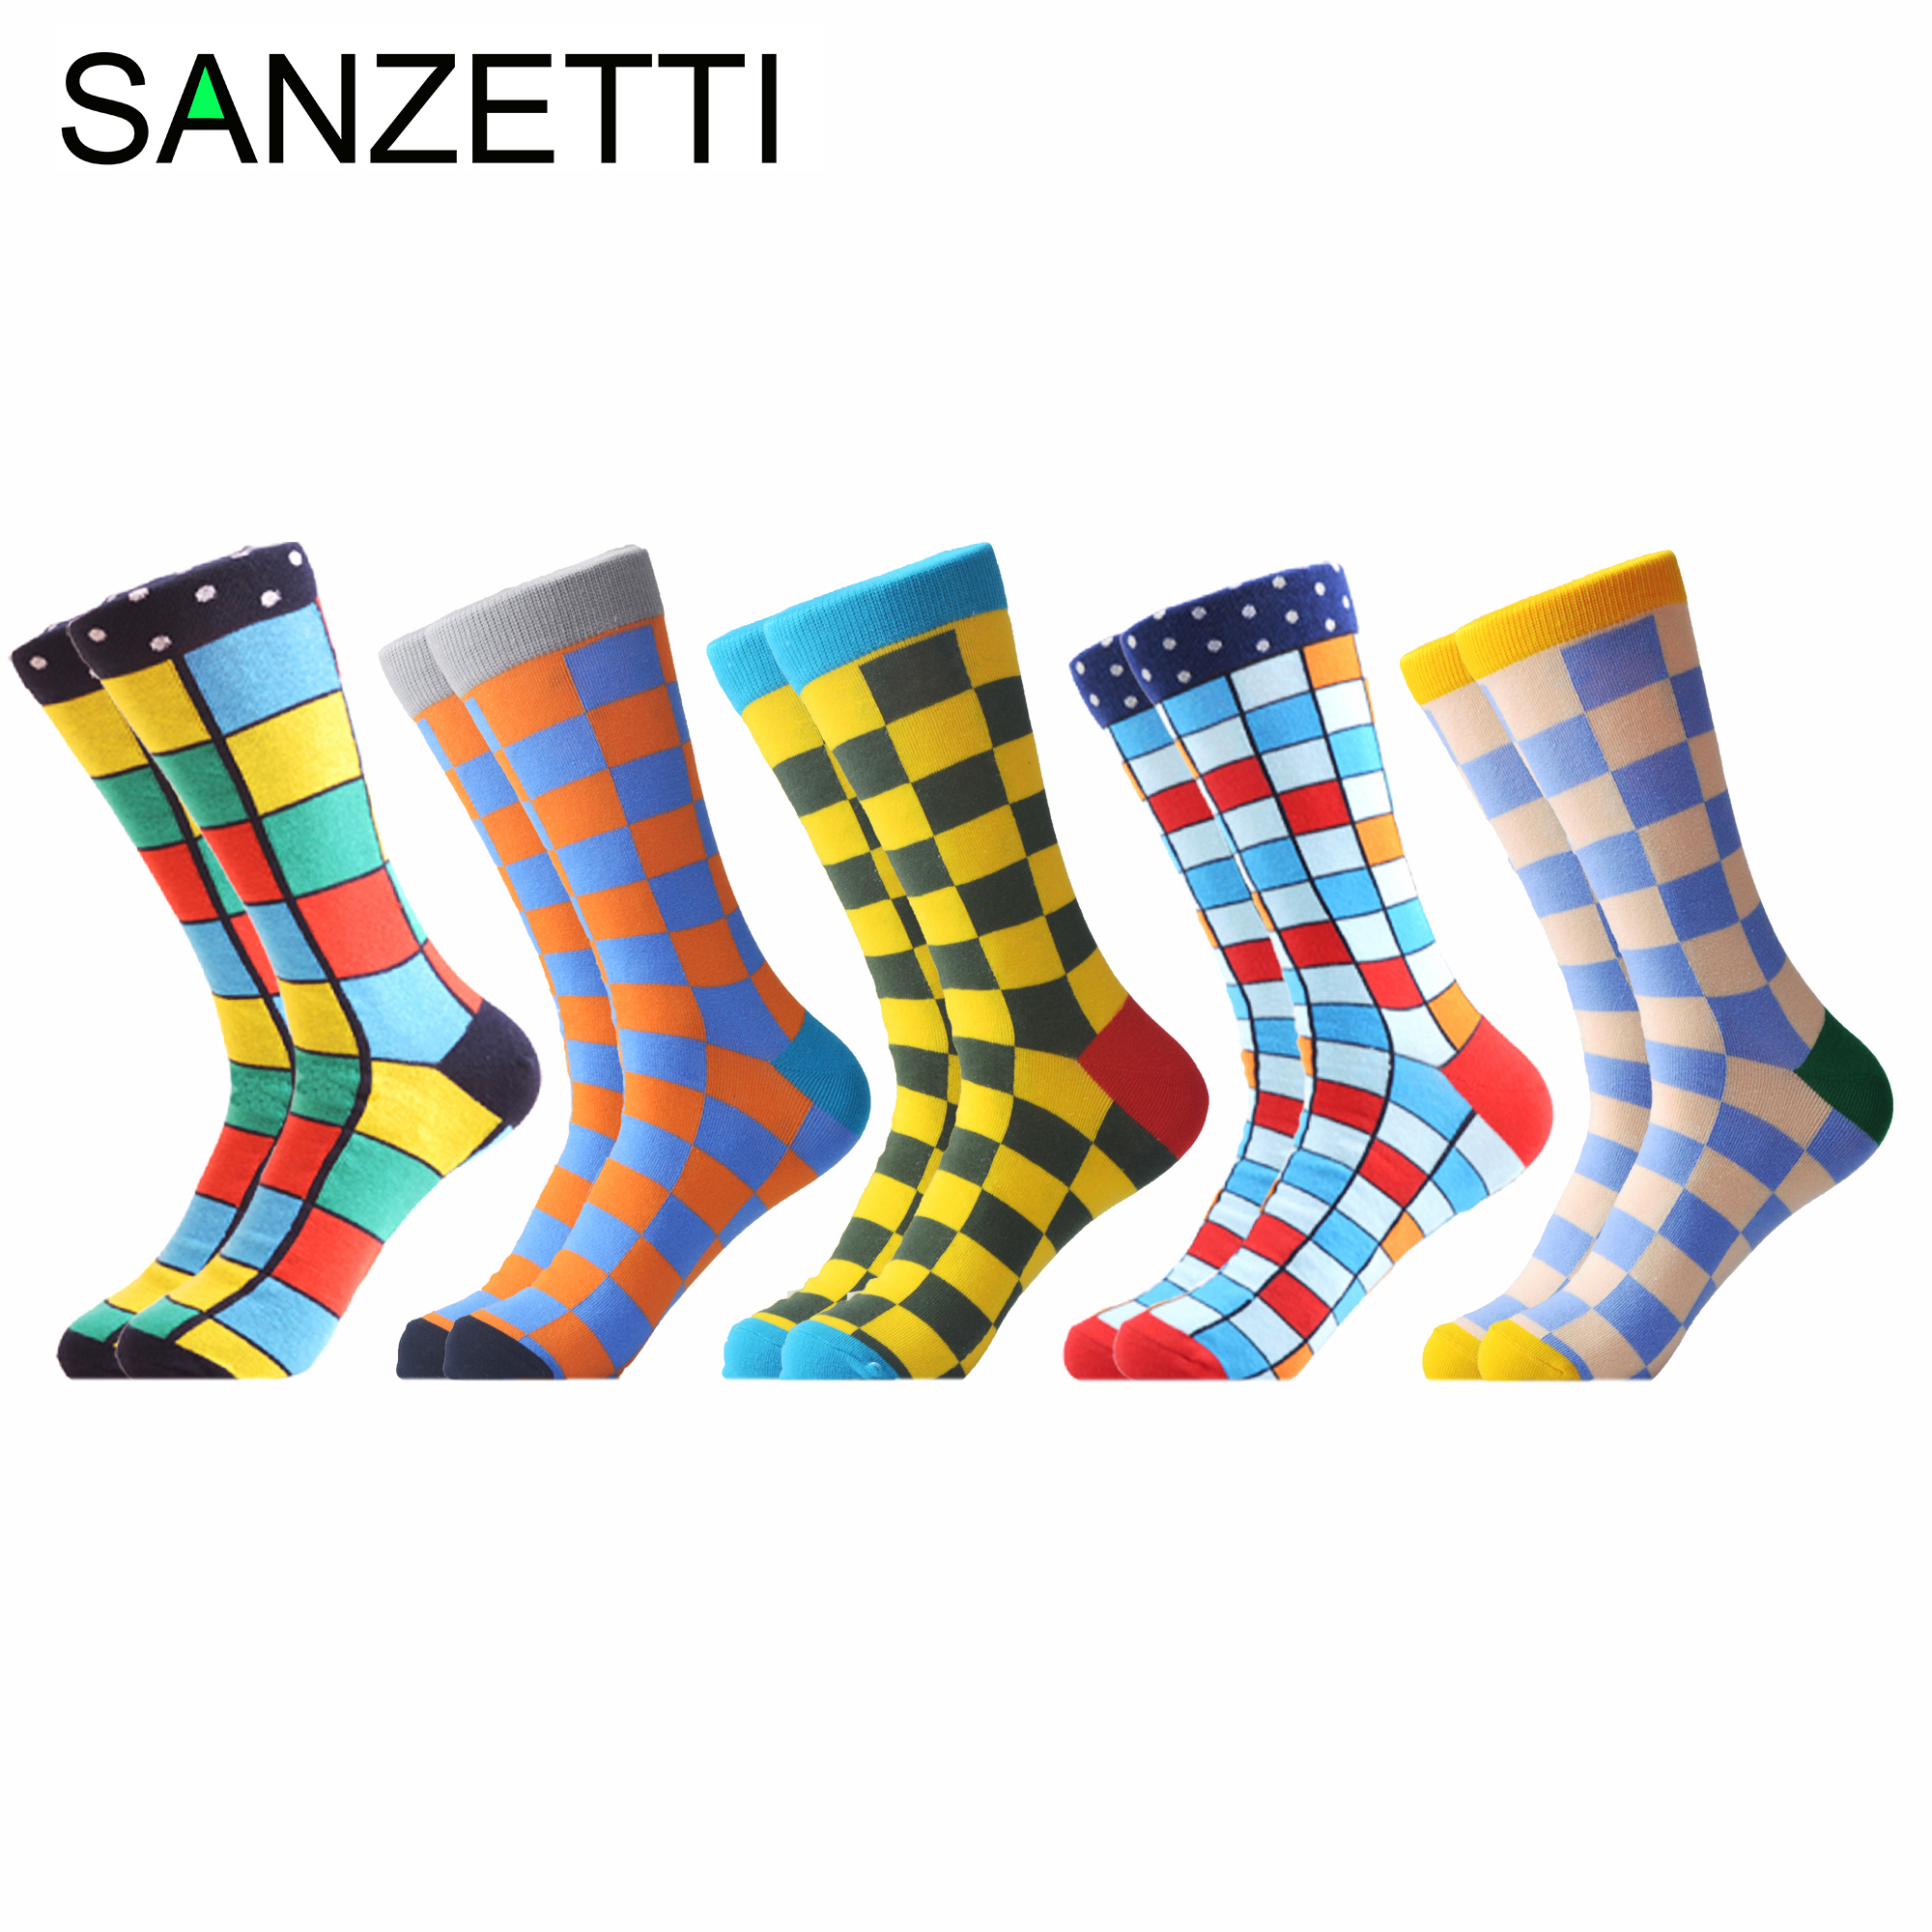 SANZETTI 5 Pairs/Lot Men's Casual Combed Cotton Happy Crew Socks Hip Hop Street Skate Boat Socks Gifts Creative Dress Socks